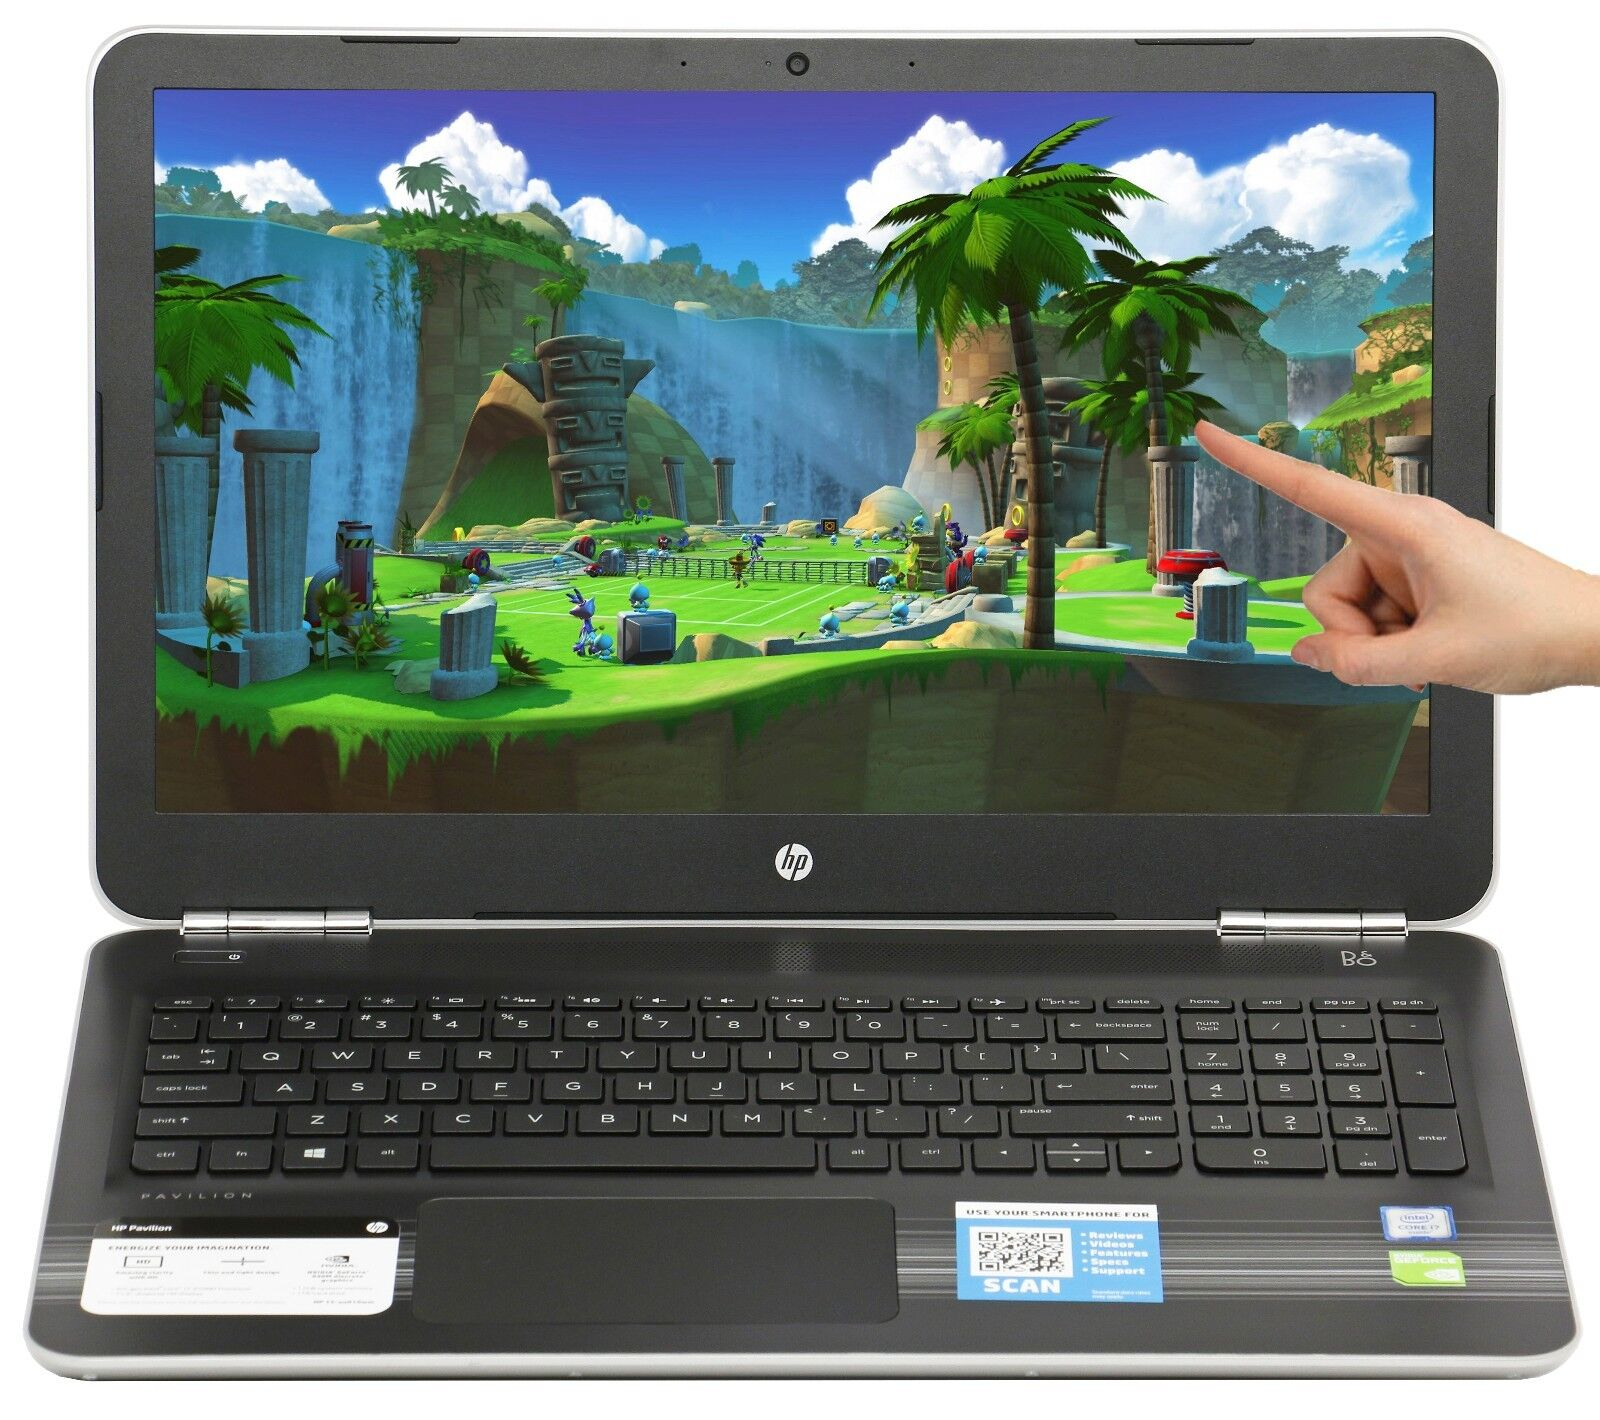 Купить HP - New HP 15.6 Touch NVIDIA 940MX i7-6500U 2.5GHz 12GB 1TB Win 10 Gaming Laptop